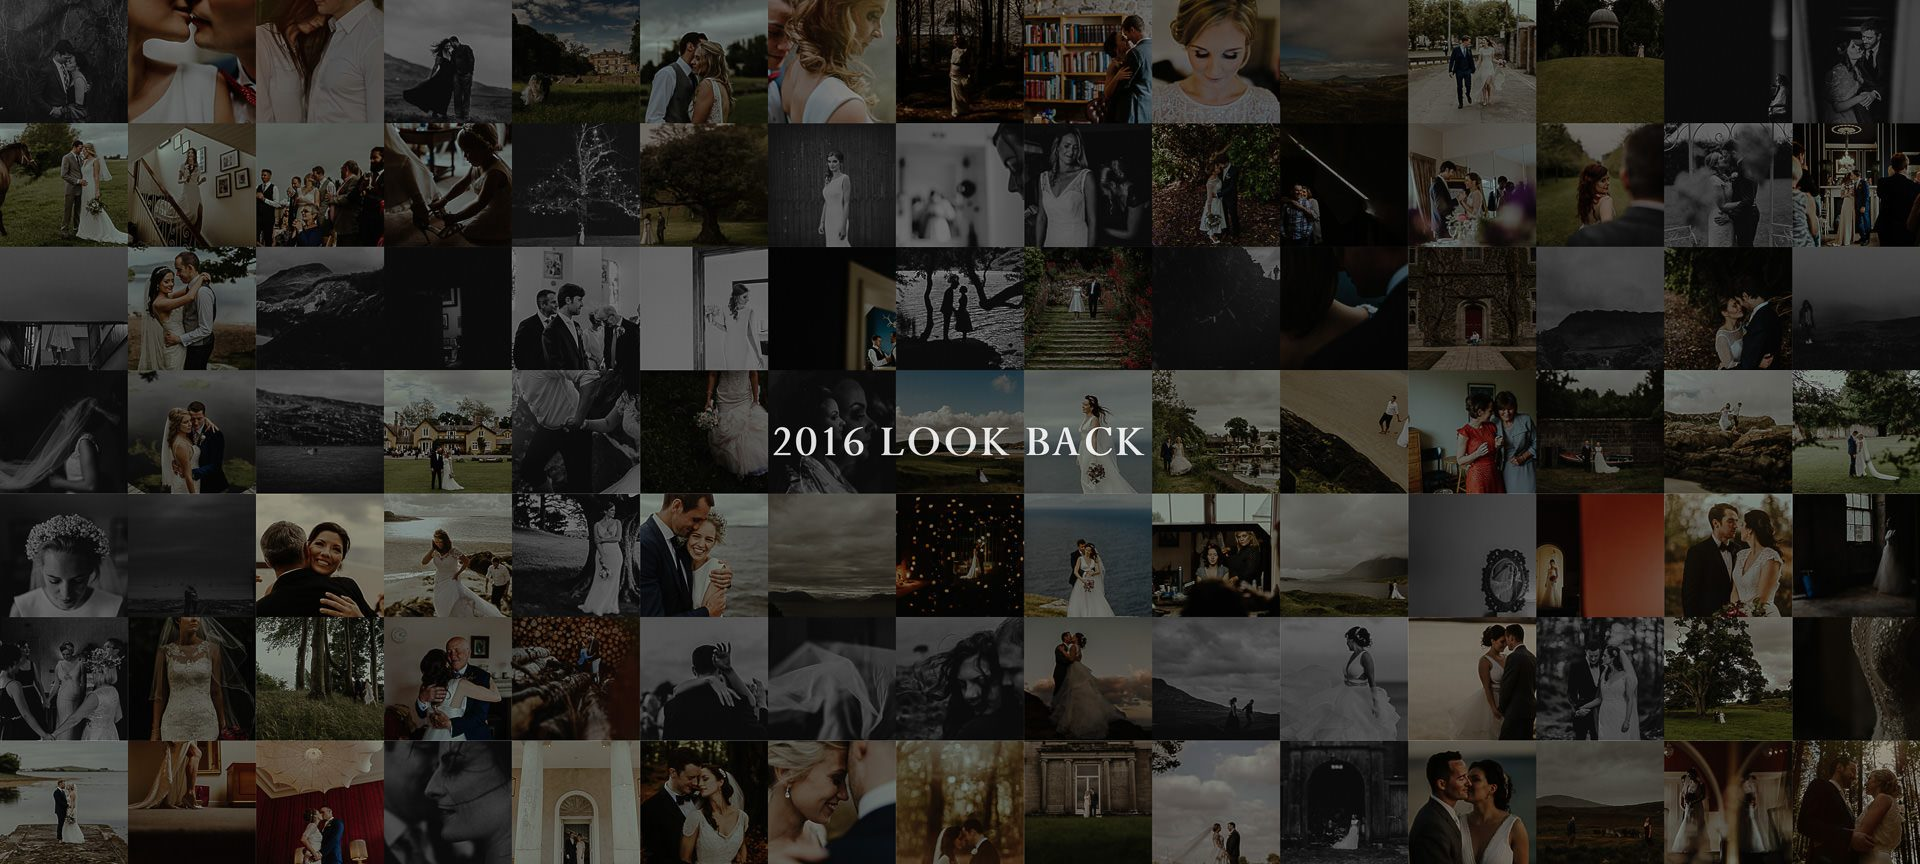 Selection of best wedding pictures in Ireland in 2016 and 2017 and slideshow